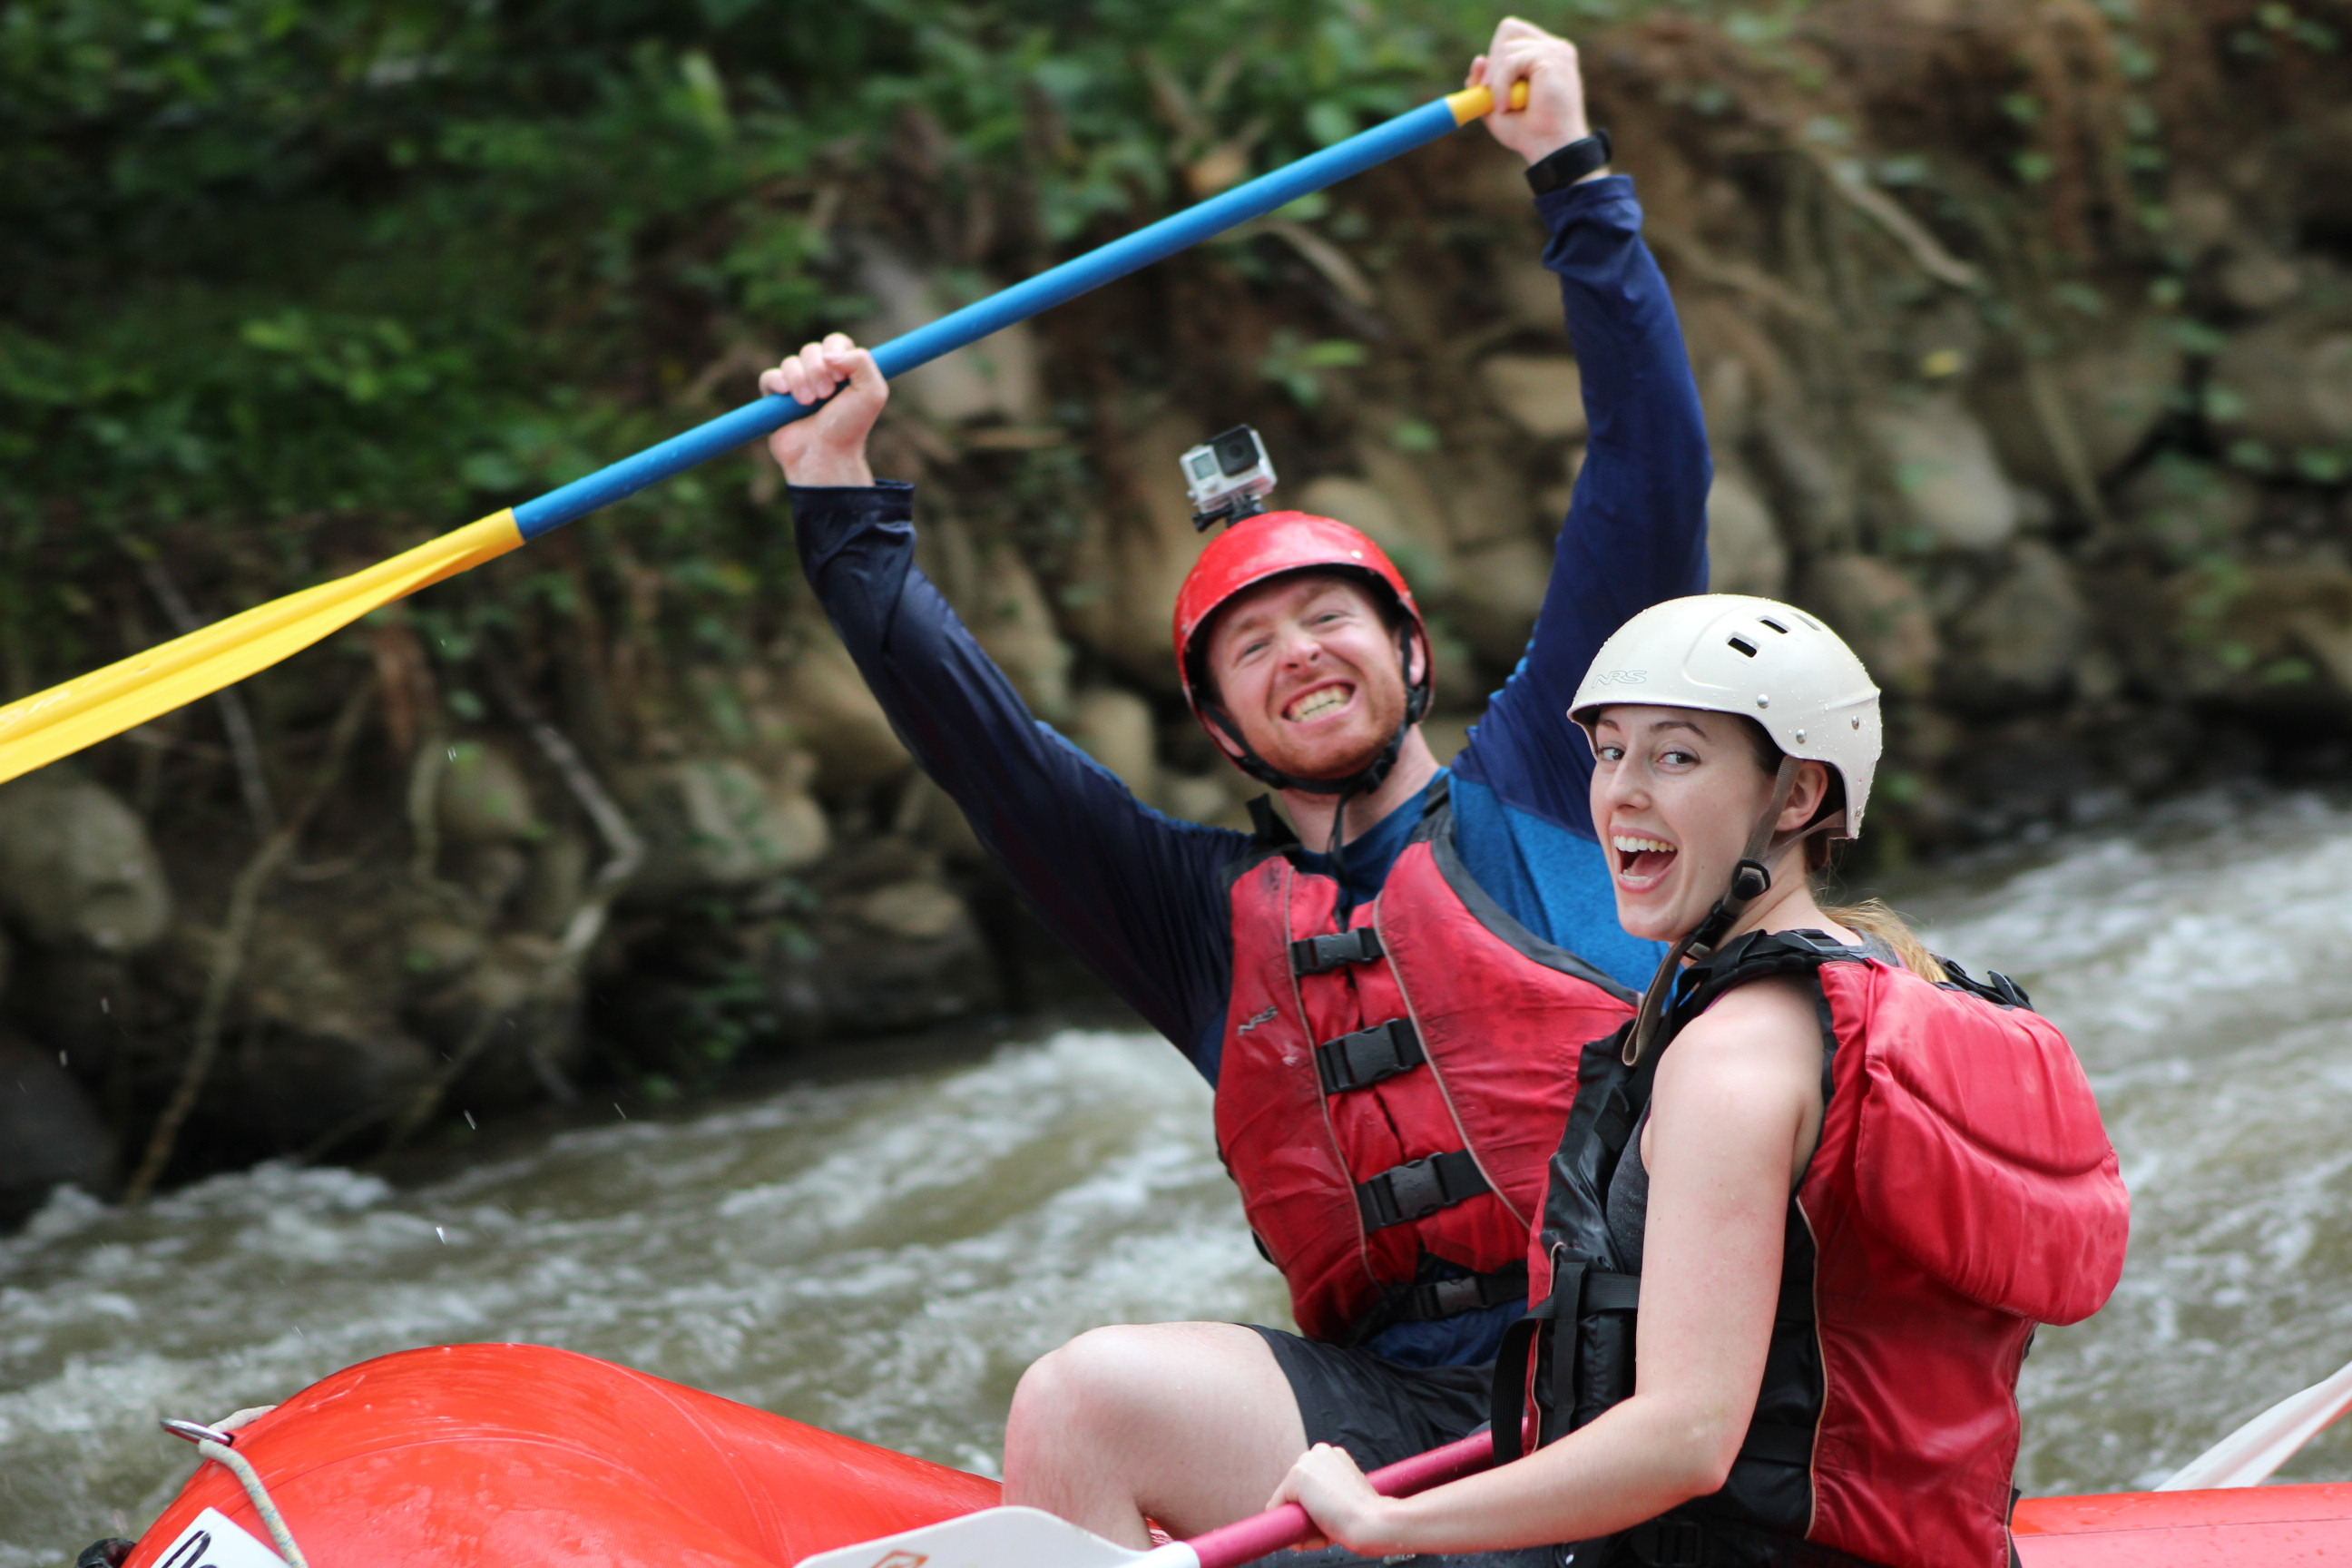 Join us on an epic Extreme Adventure Tour in Costa Rica. Enjoy the Most Extreme Tour with Desafio Adventure Company! Rafting Costa RIca.